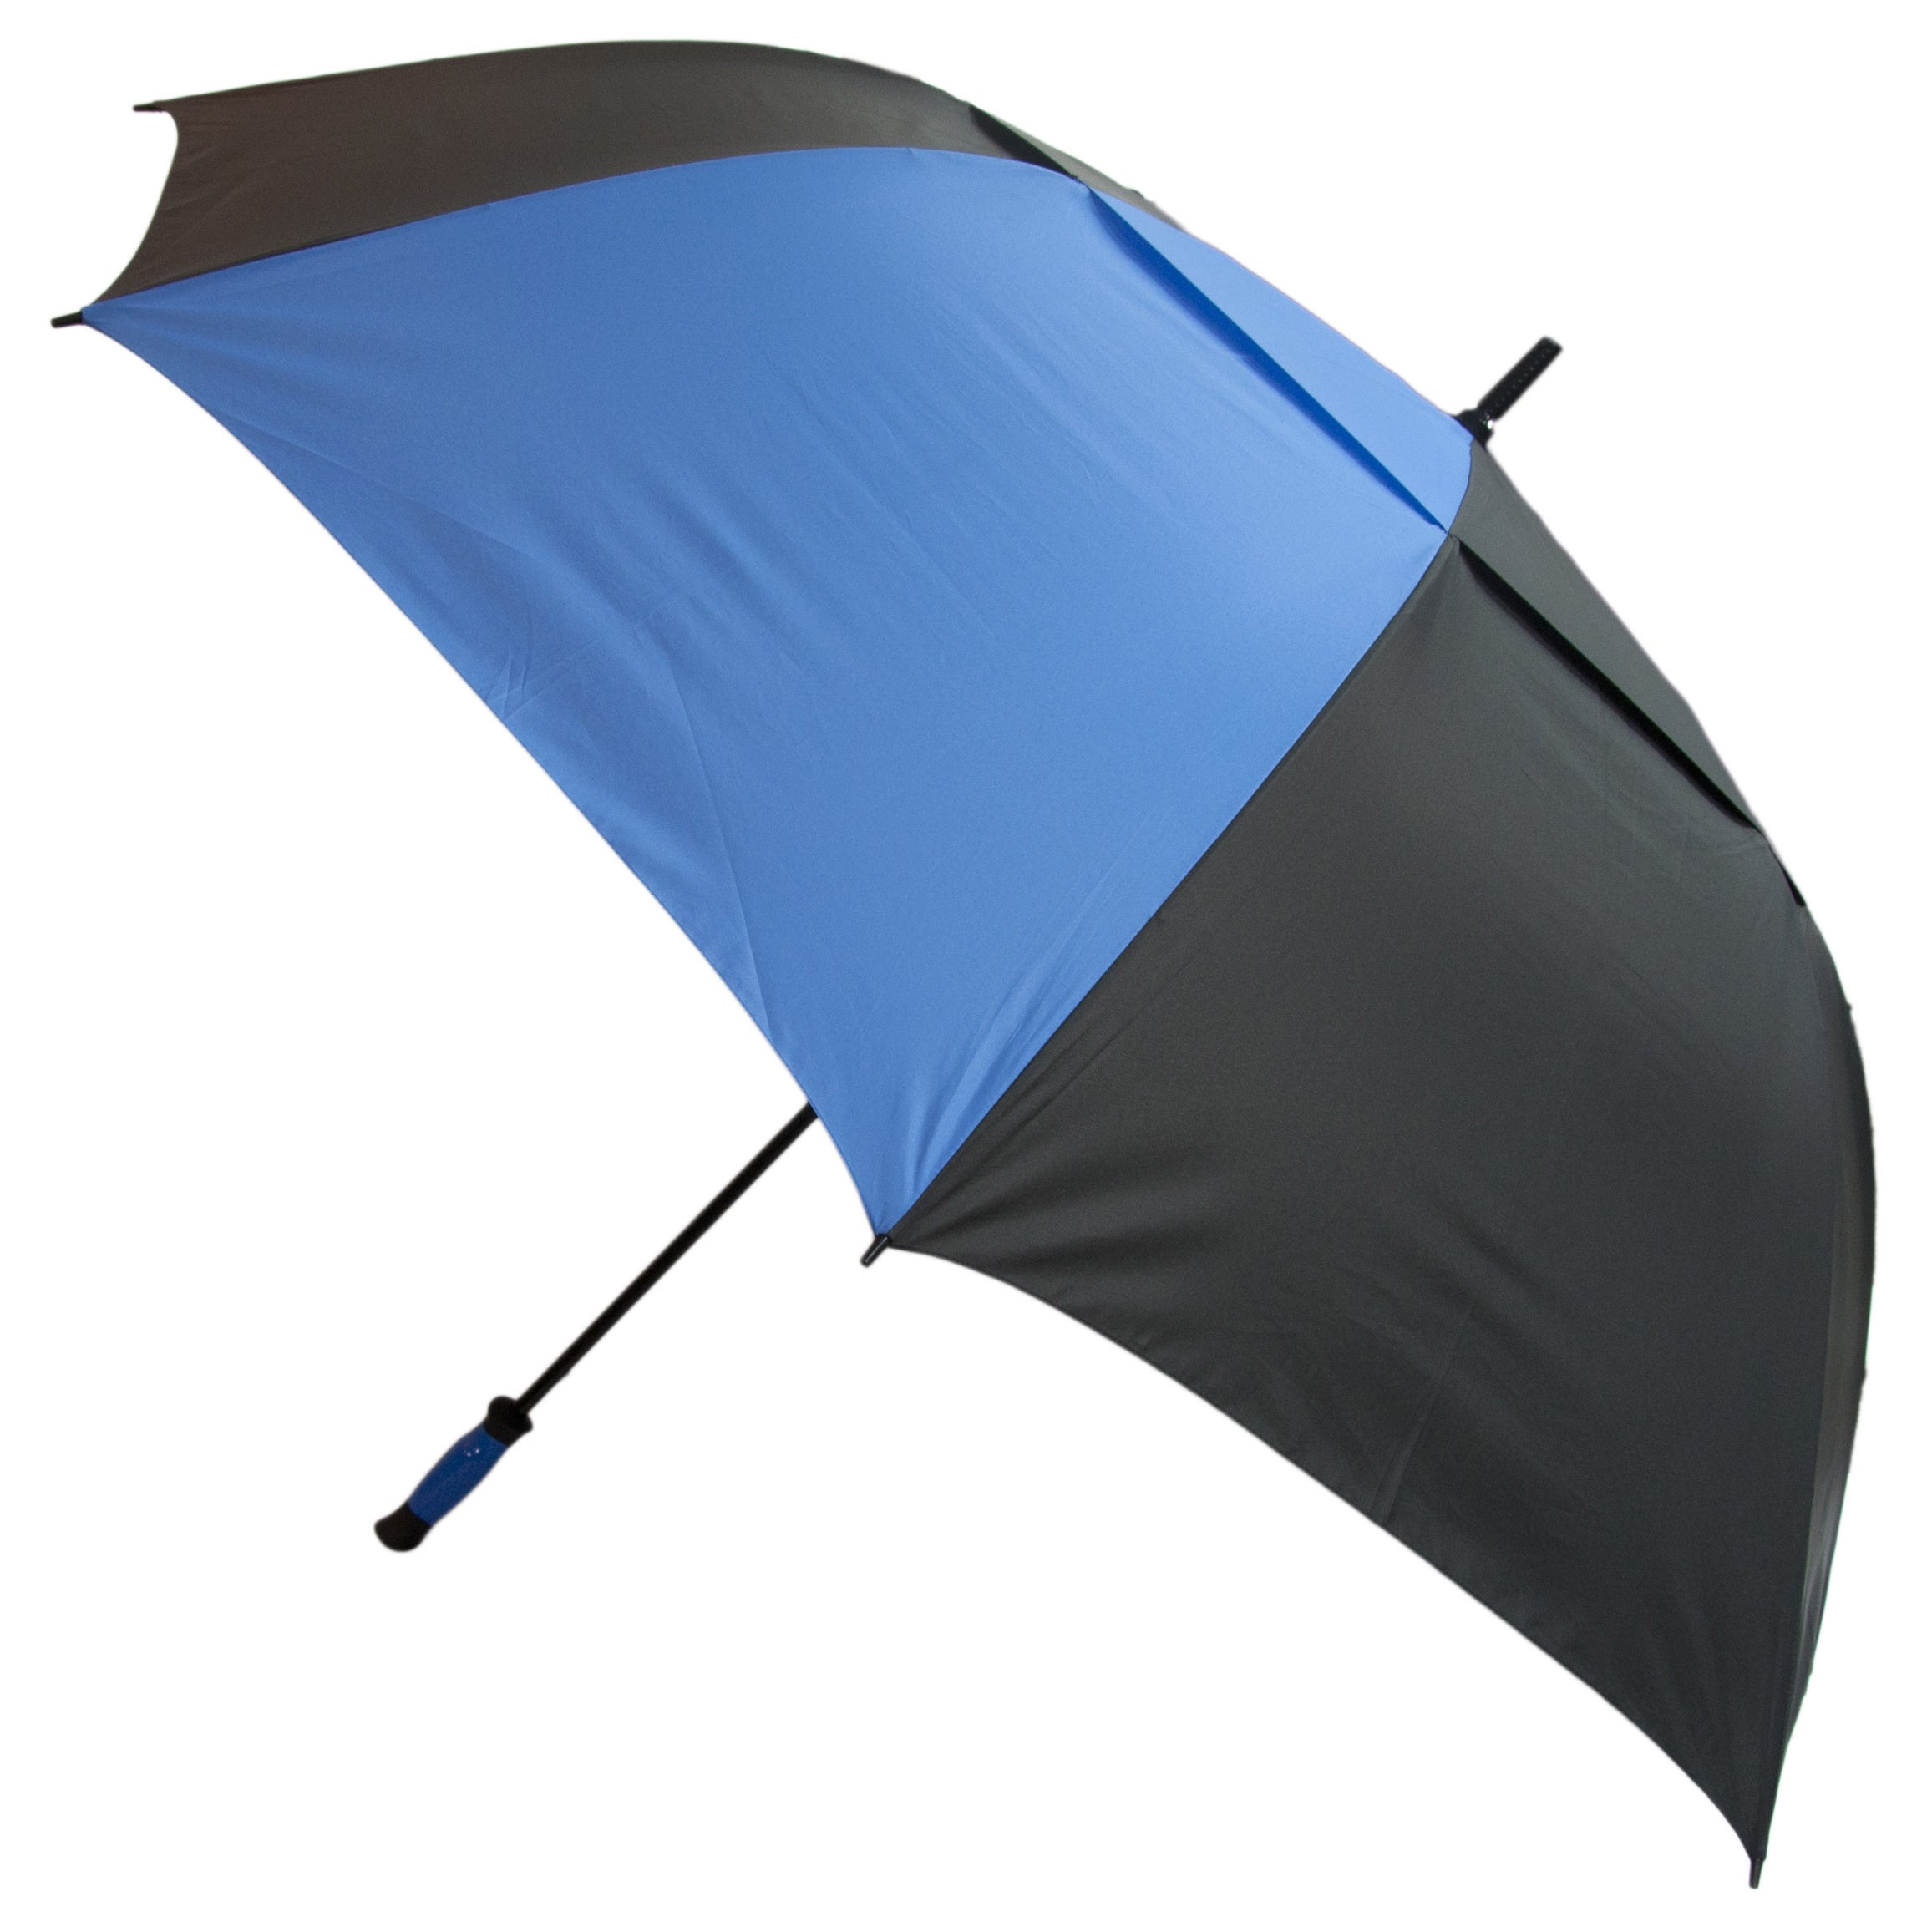 Shop For 72 Dual Canopy Umbrella Get Free Delivery On Everything At Overstock Your Online Golf Equipment Destination Get 5 In Rewards With Club O 10164247